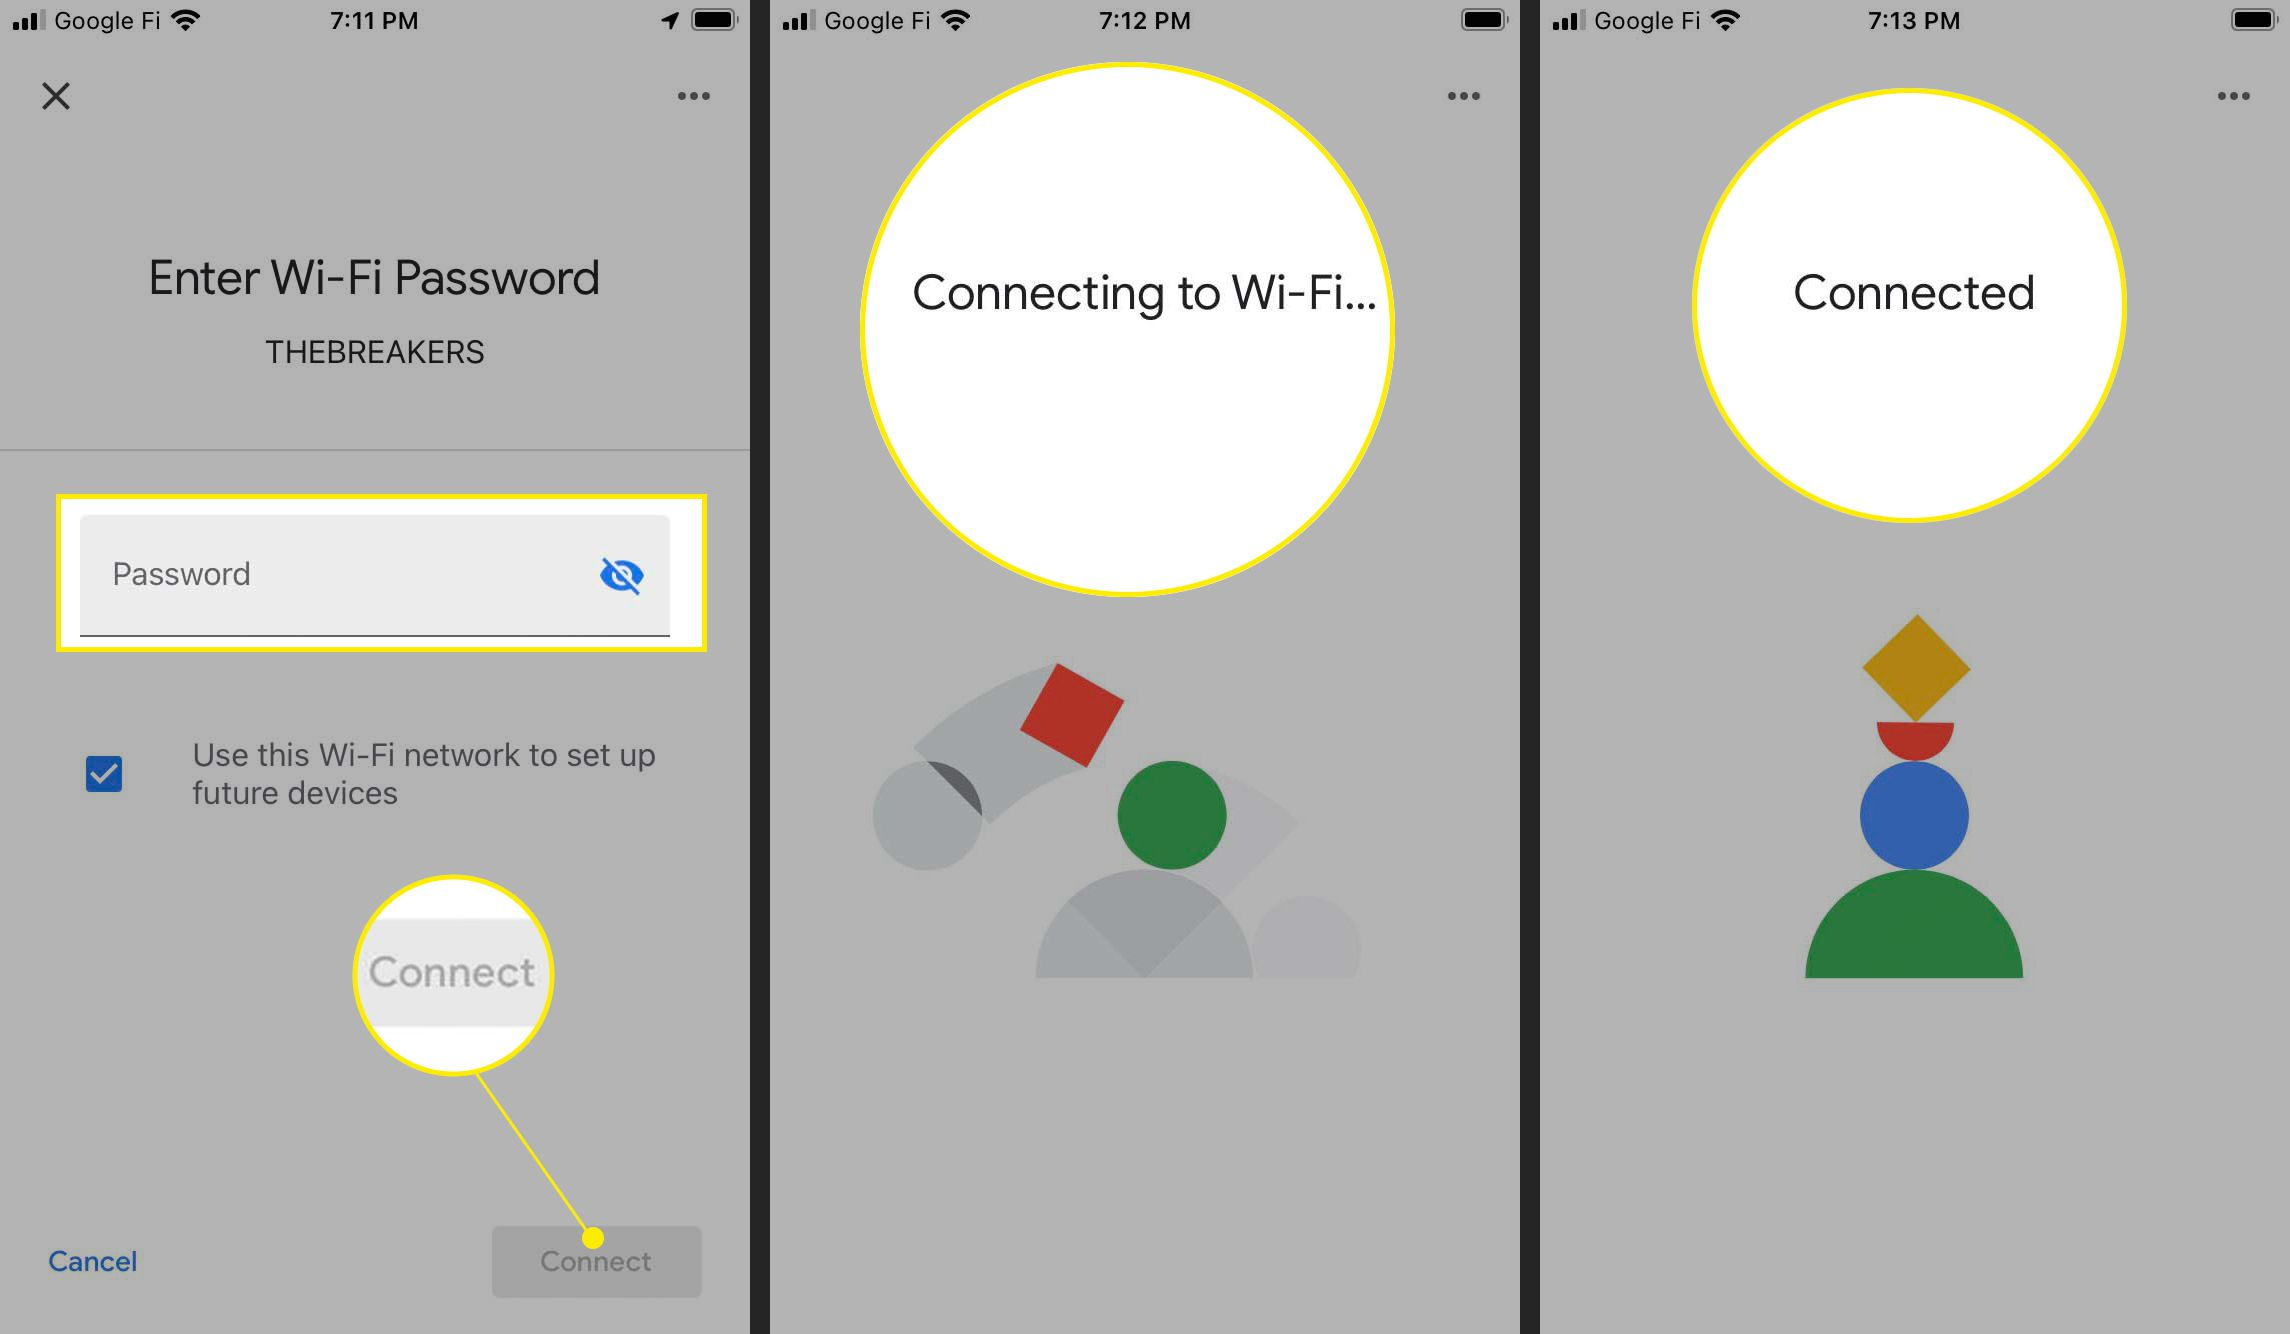 Chromecast Wi-Fi setup with password field, connect, Connecting to Wi-Fi, and Connected highlighted